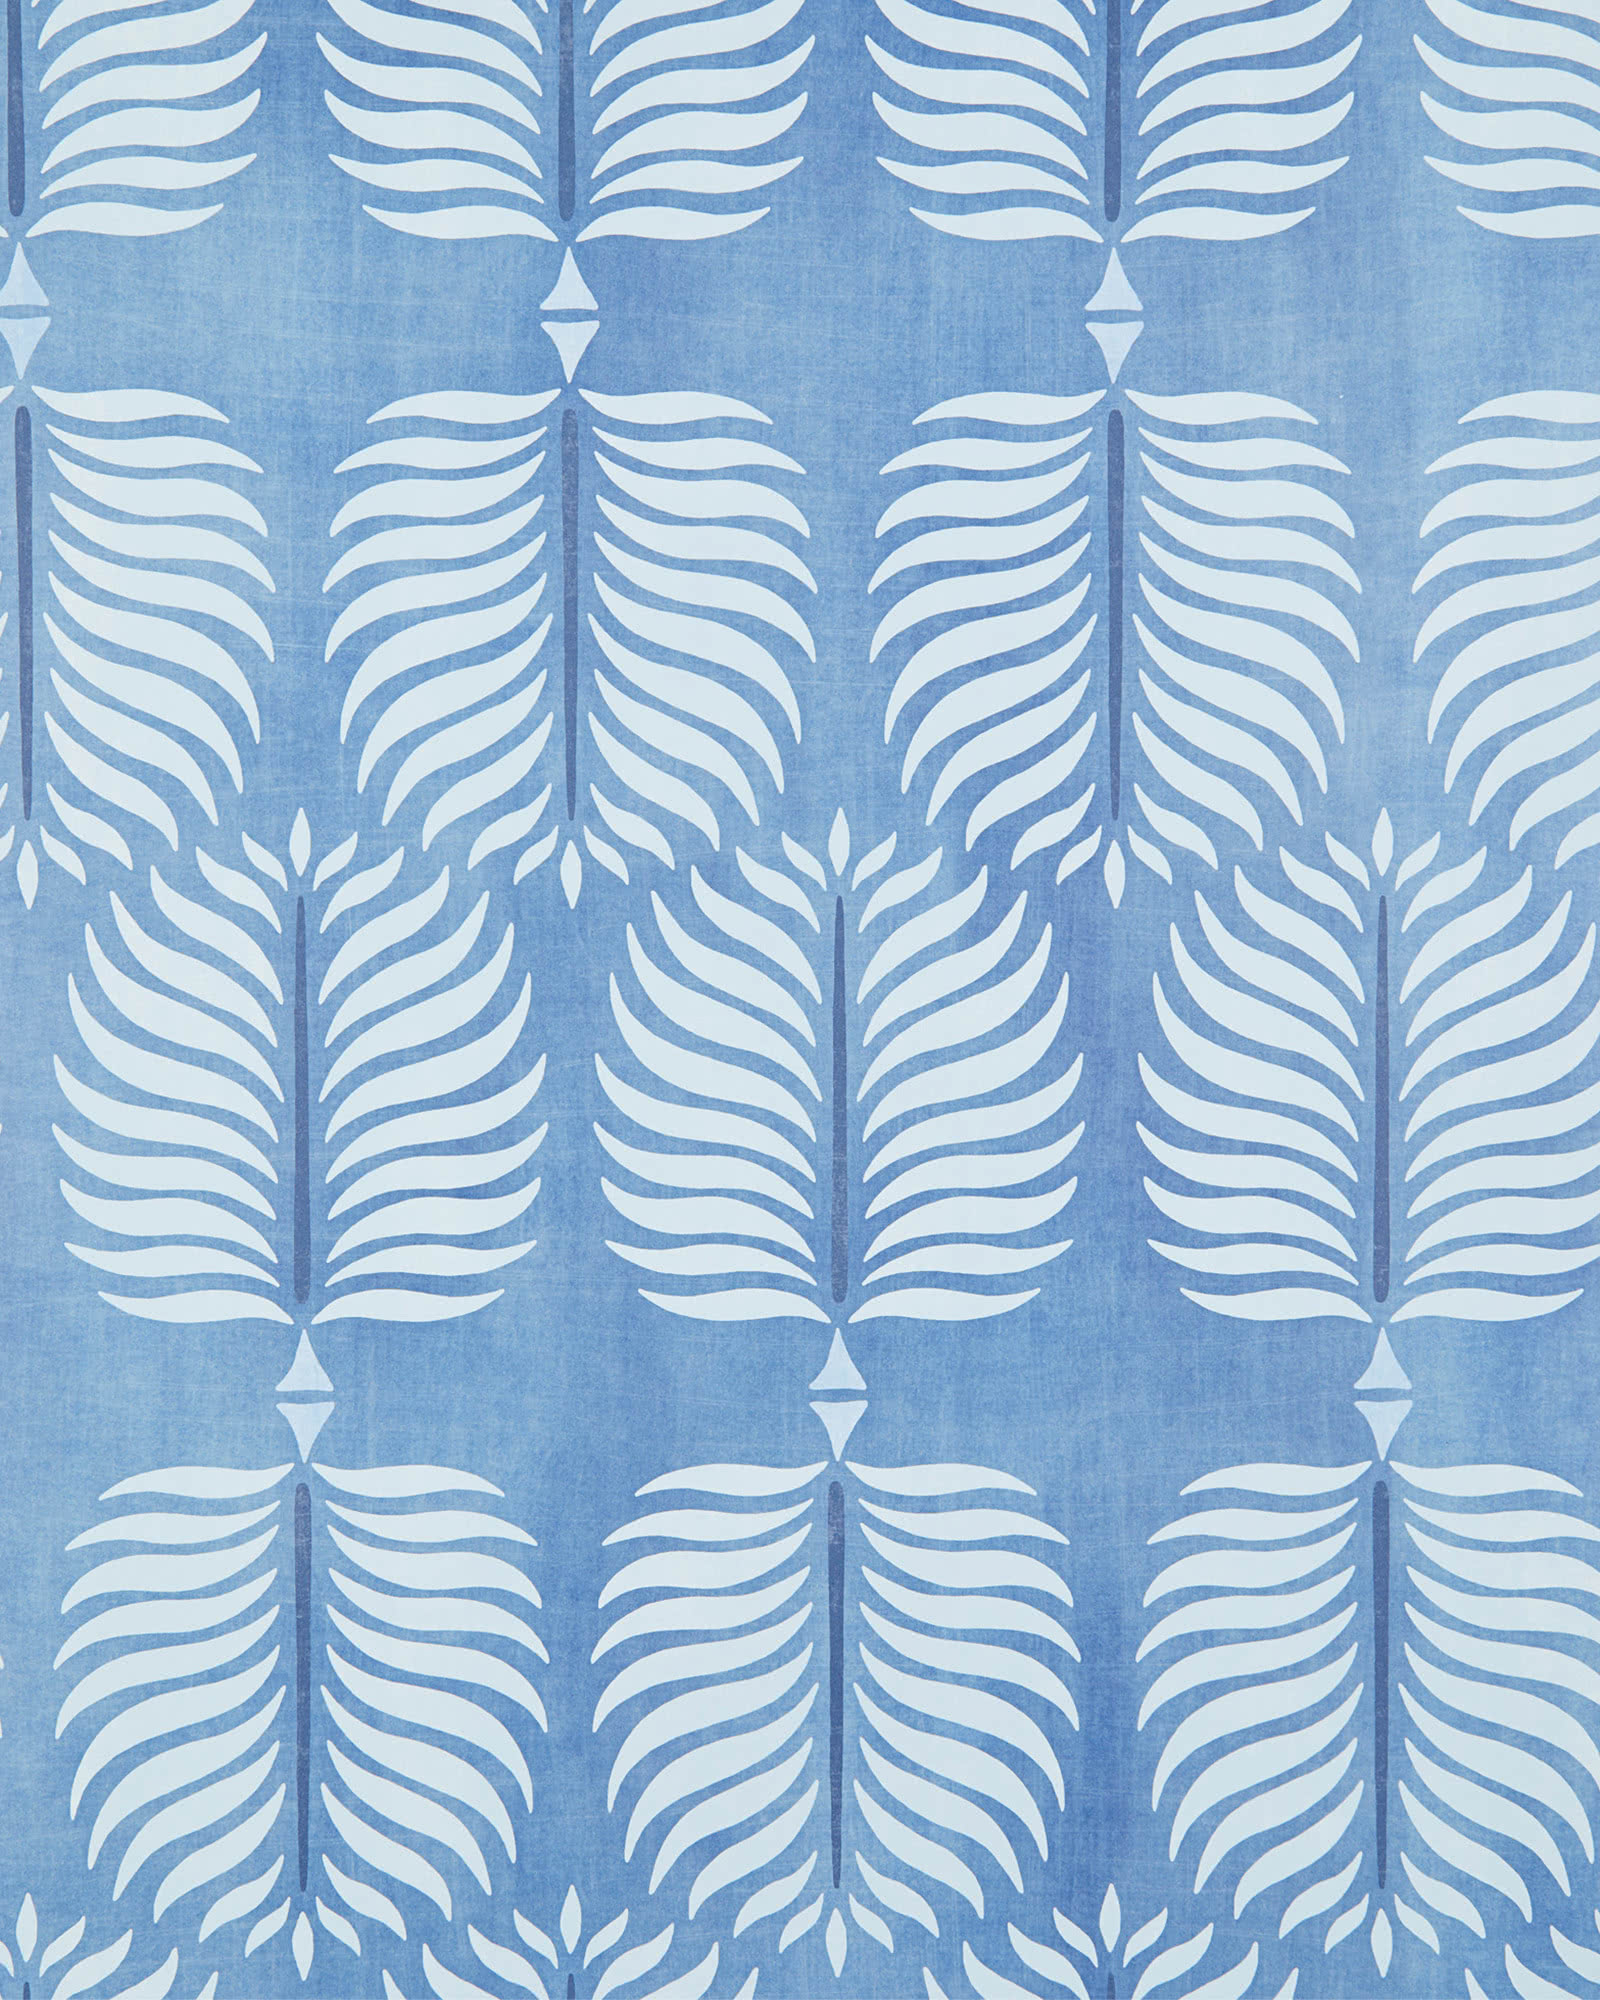 Granada Wallpaper Swatch, Washed Indigo/Sky